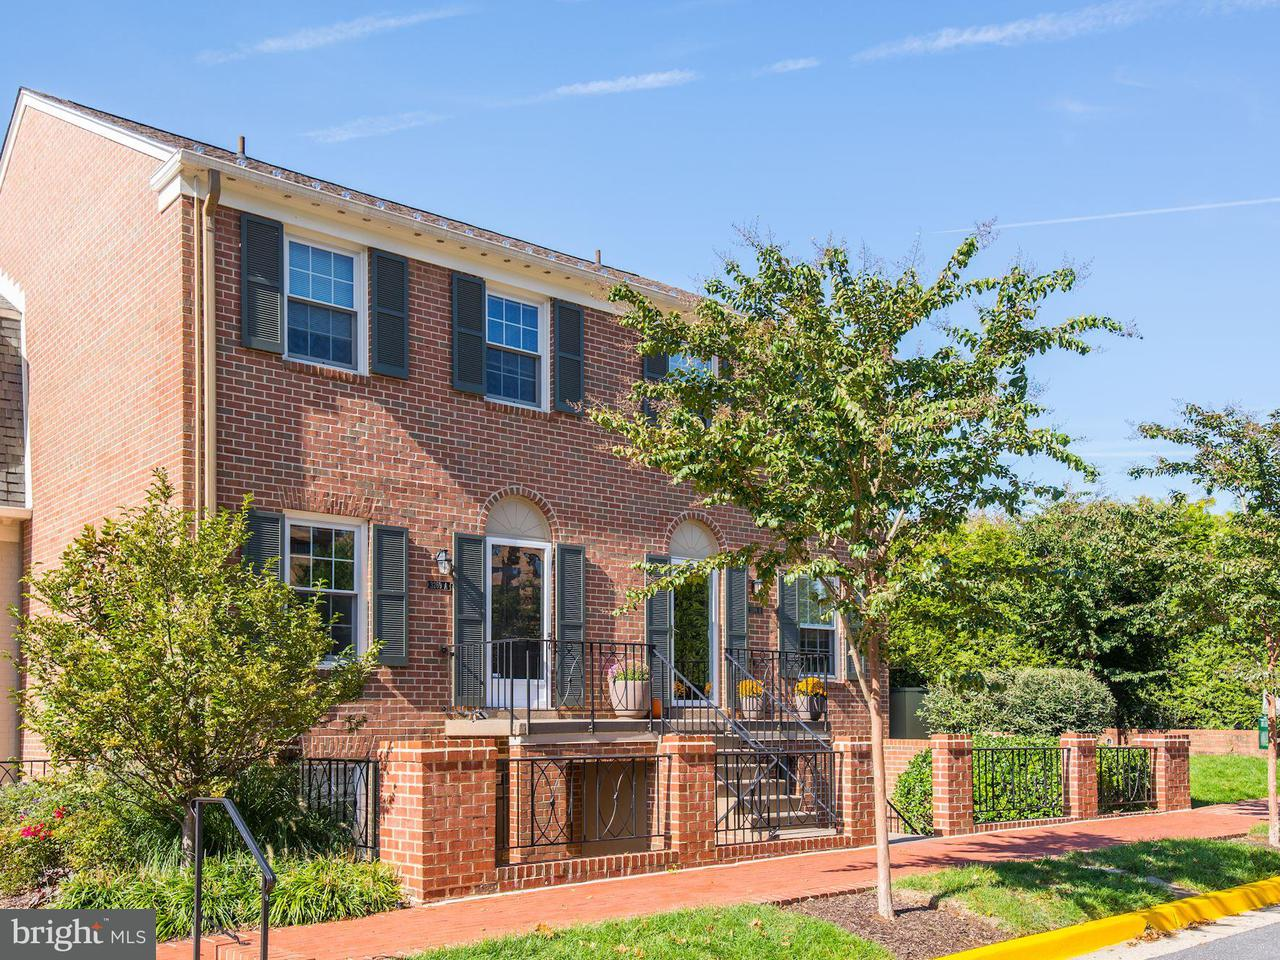 Single Family for Sale at 3269 Sutton Pl NW #3269a Washington, District Of Columbia 20016 United States